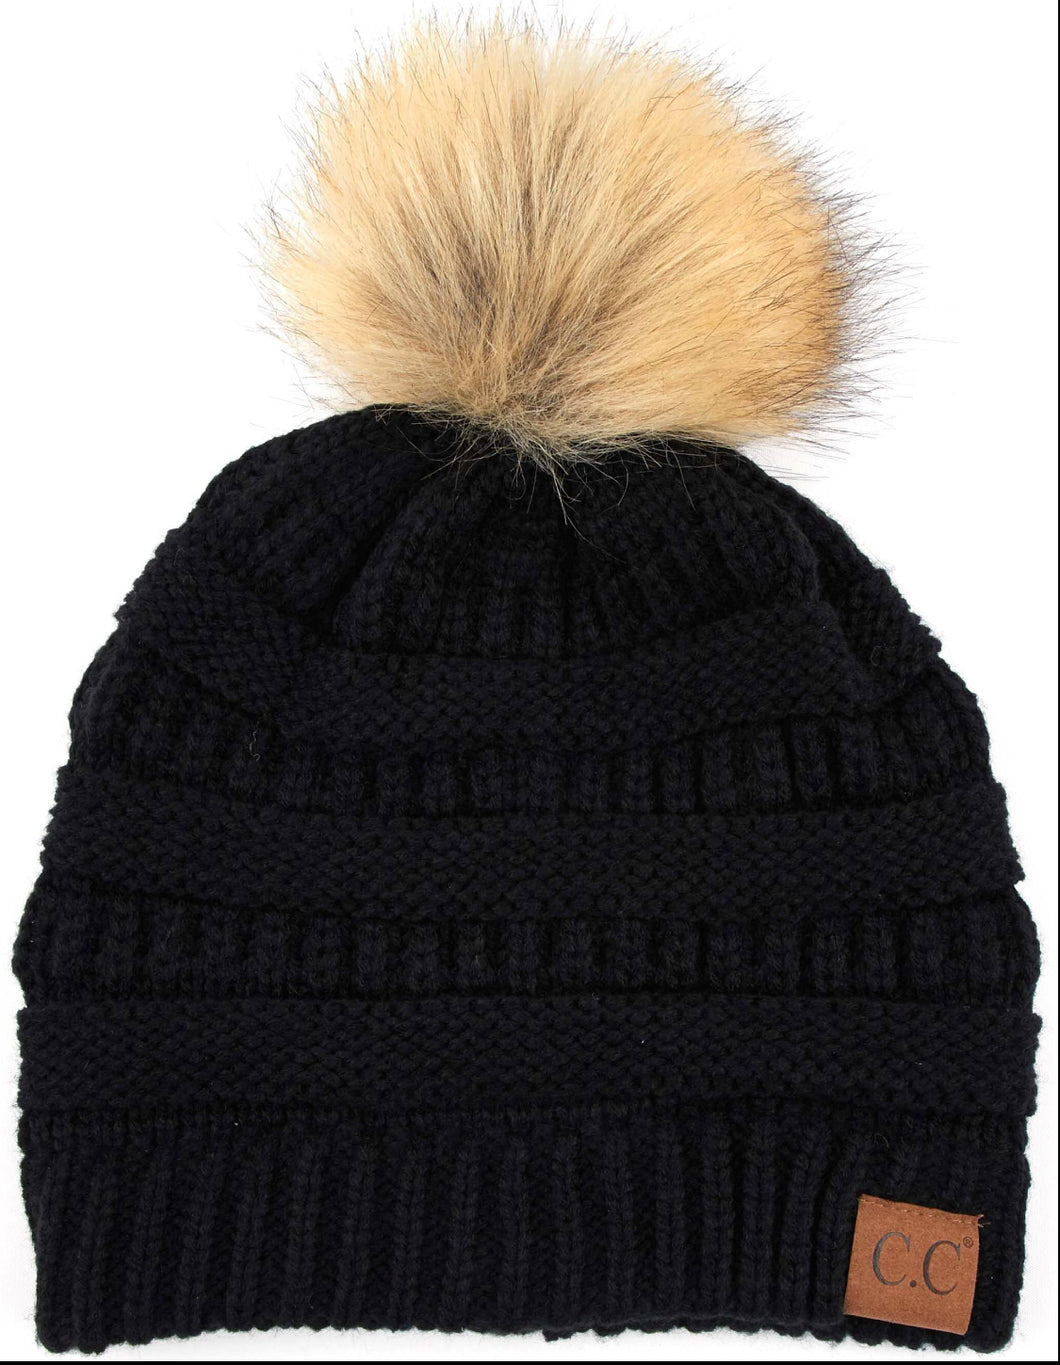 CC Beanie with Fur Pom